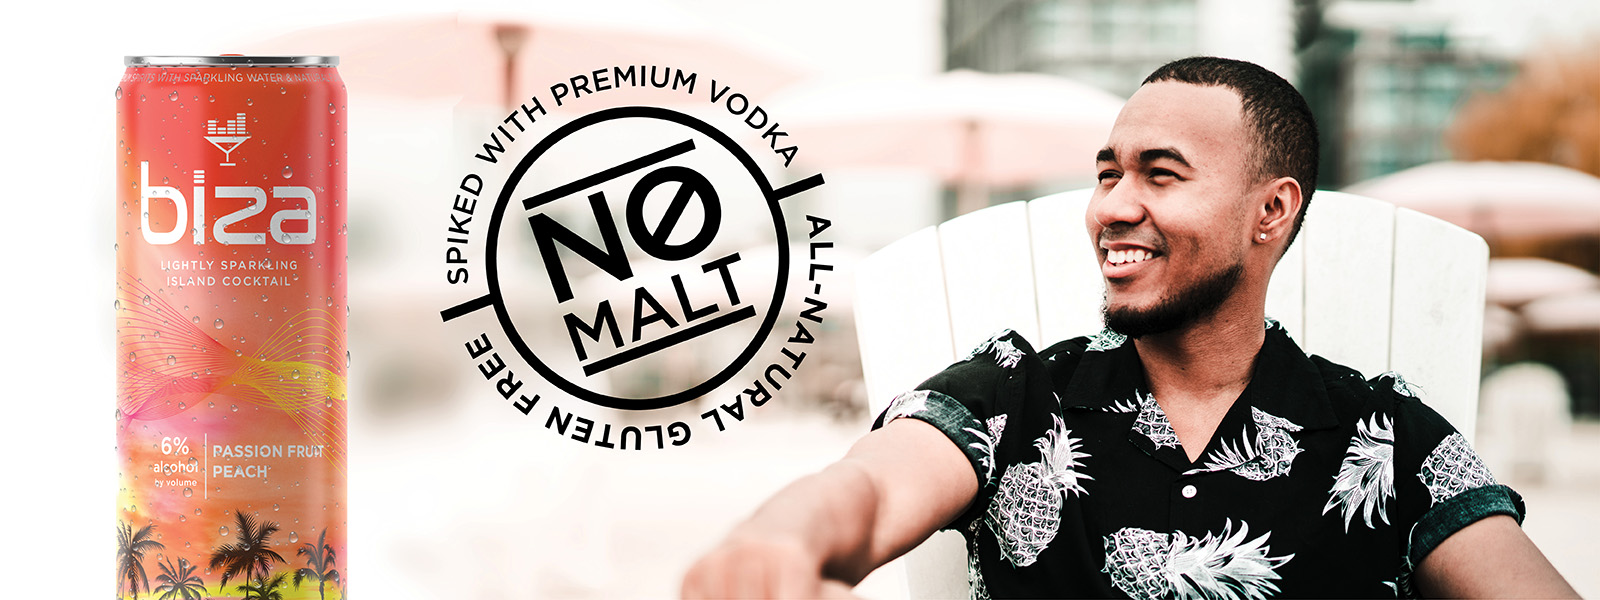 Guy sitting on a lawn chair looking at a large Biza can and a symbol that says no malt.